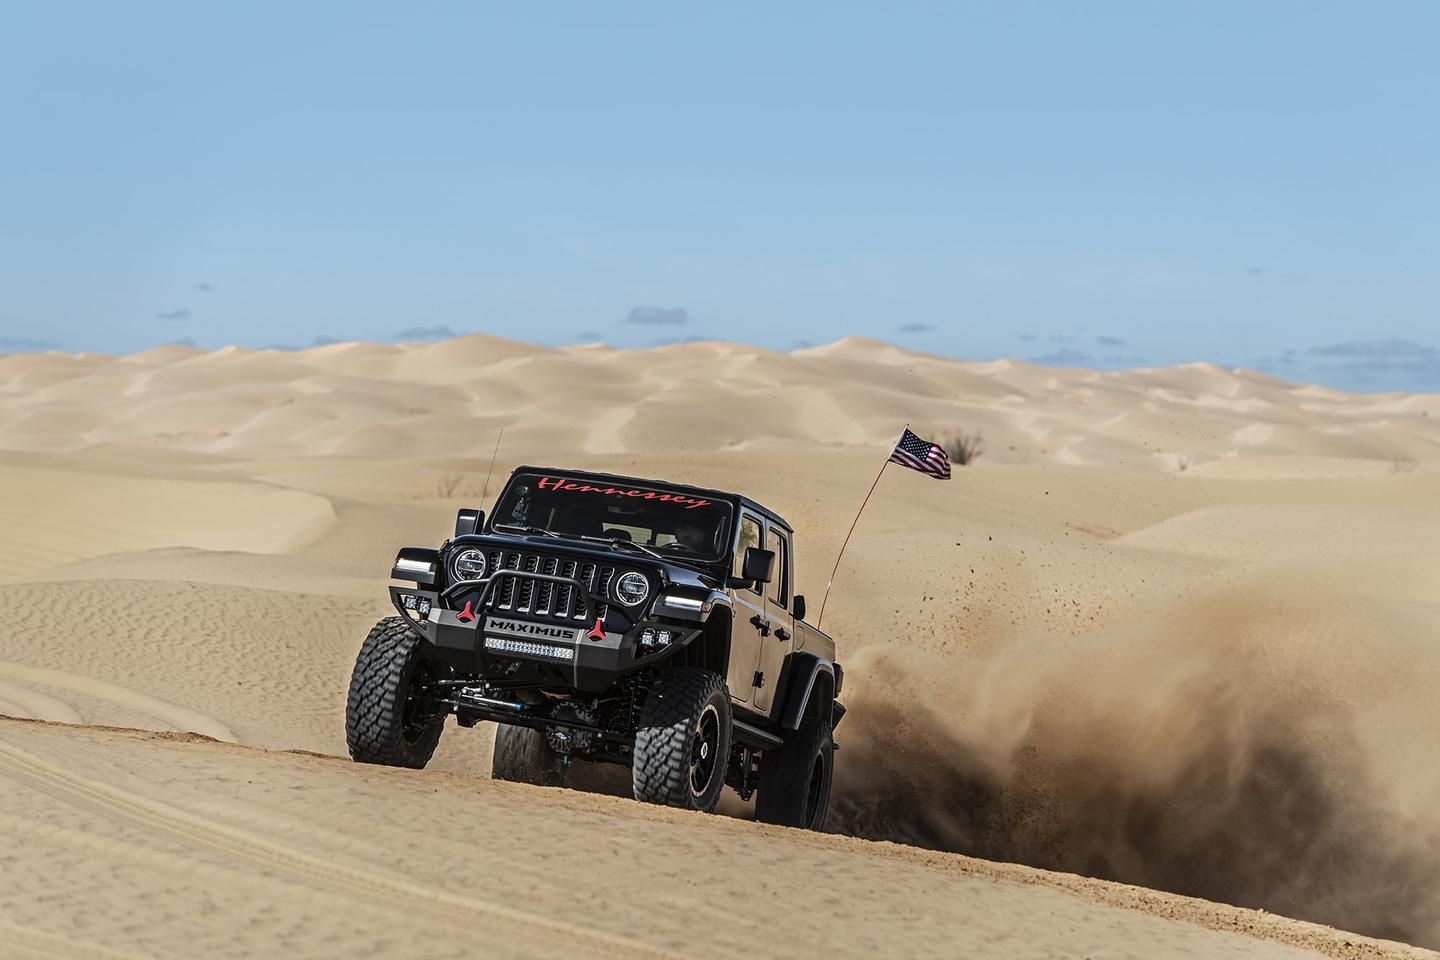 Hennessey puts its fourth Maximus build to the test on the sand dunes